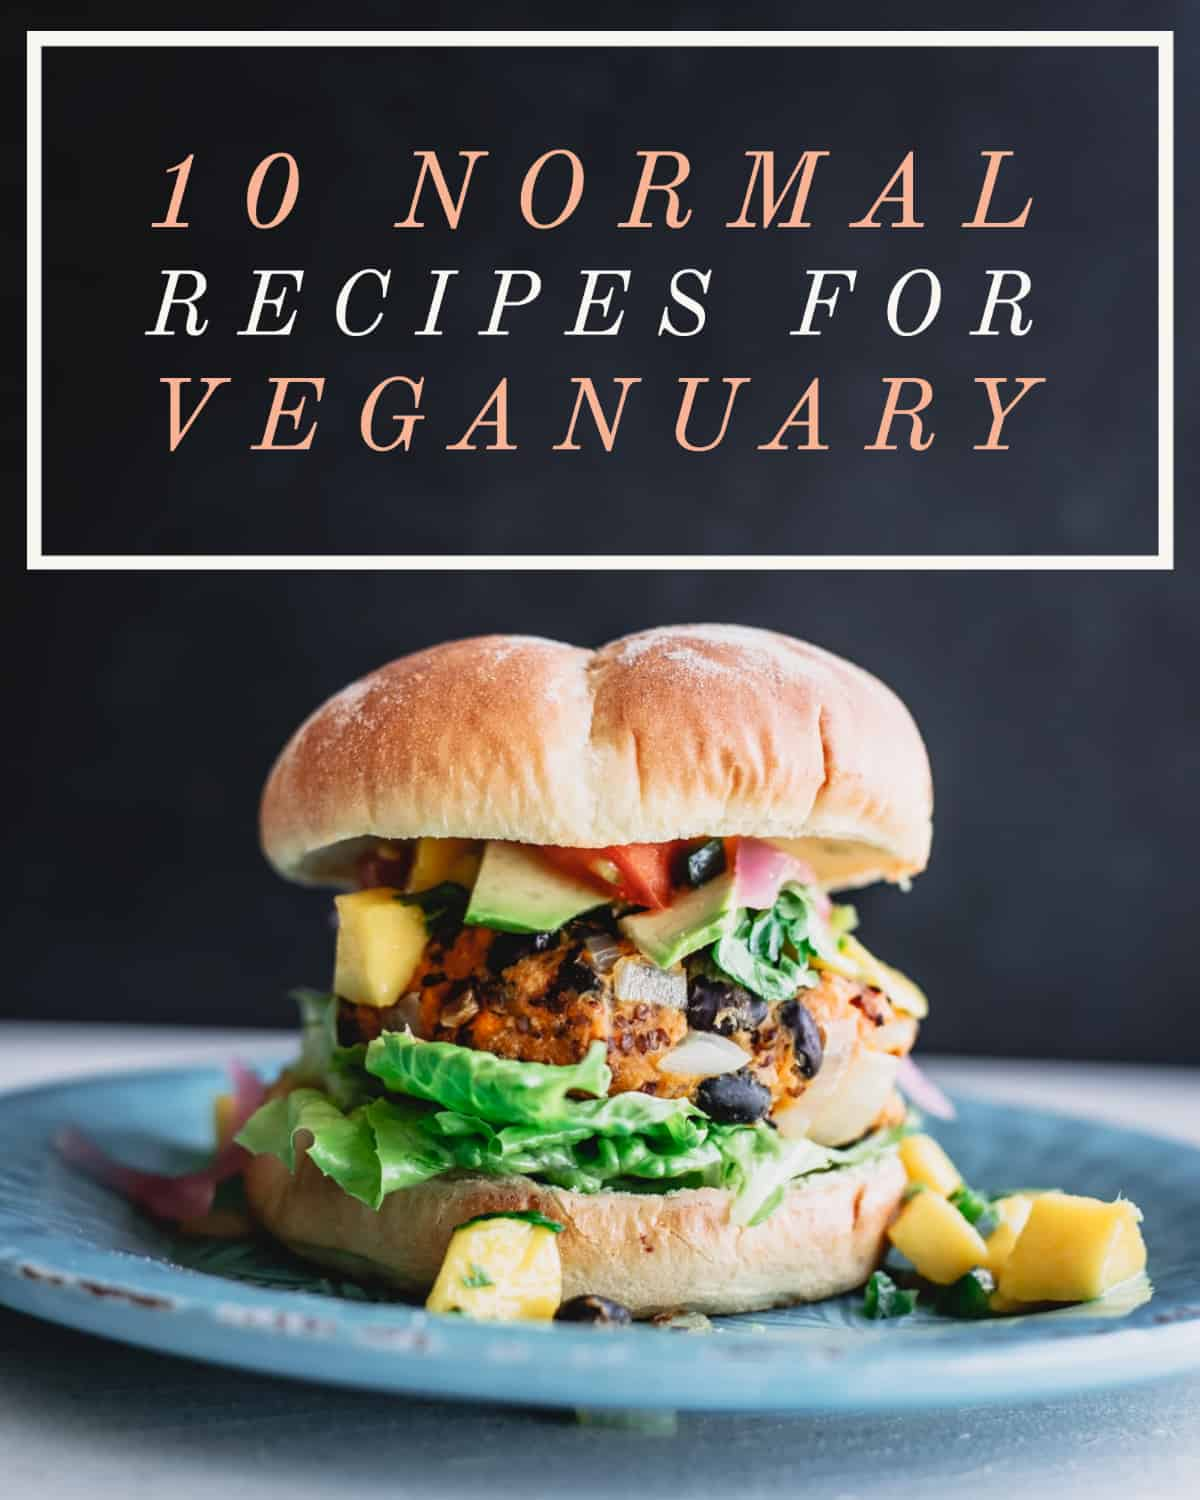 10 normal recipes for Veganuary.